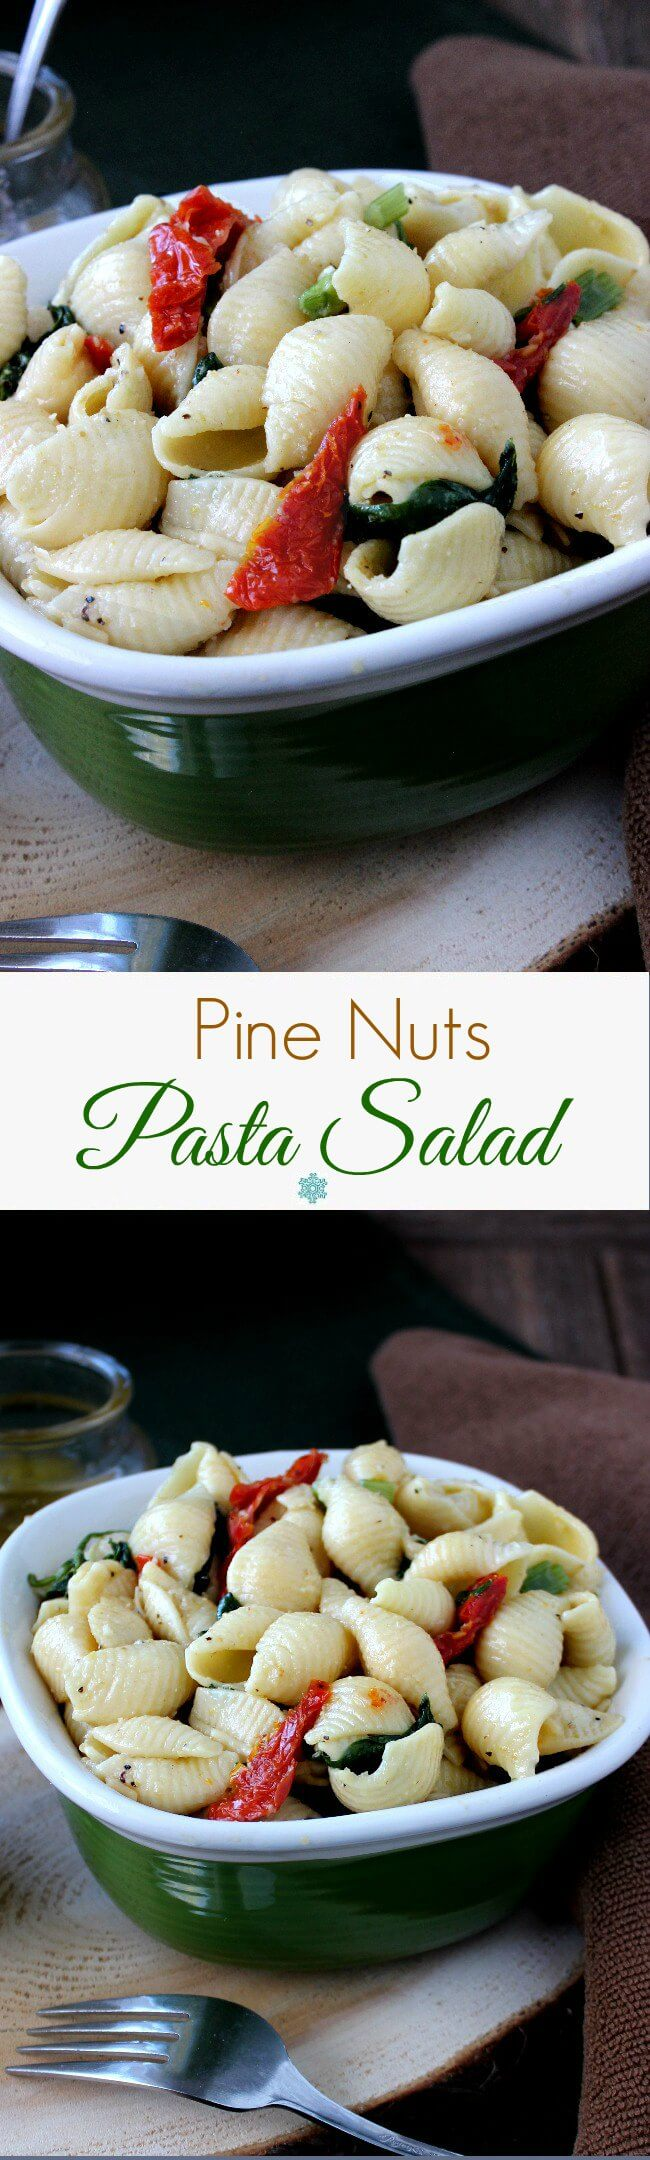 Pine Nuts Pasta Salad is popular, flavorful and easy. Toasted pine nuts are readily available & this vinaigrette brings it all over the top.